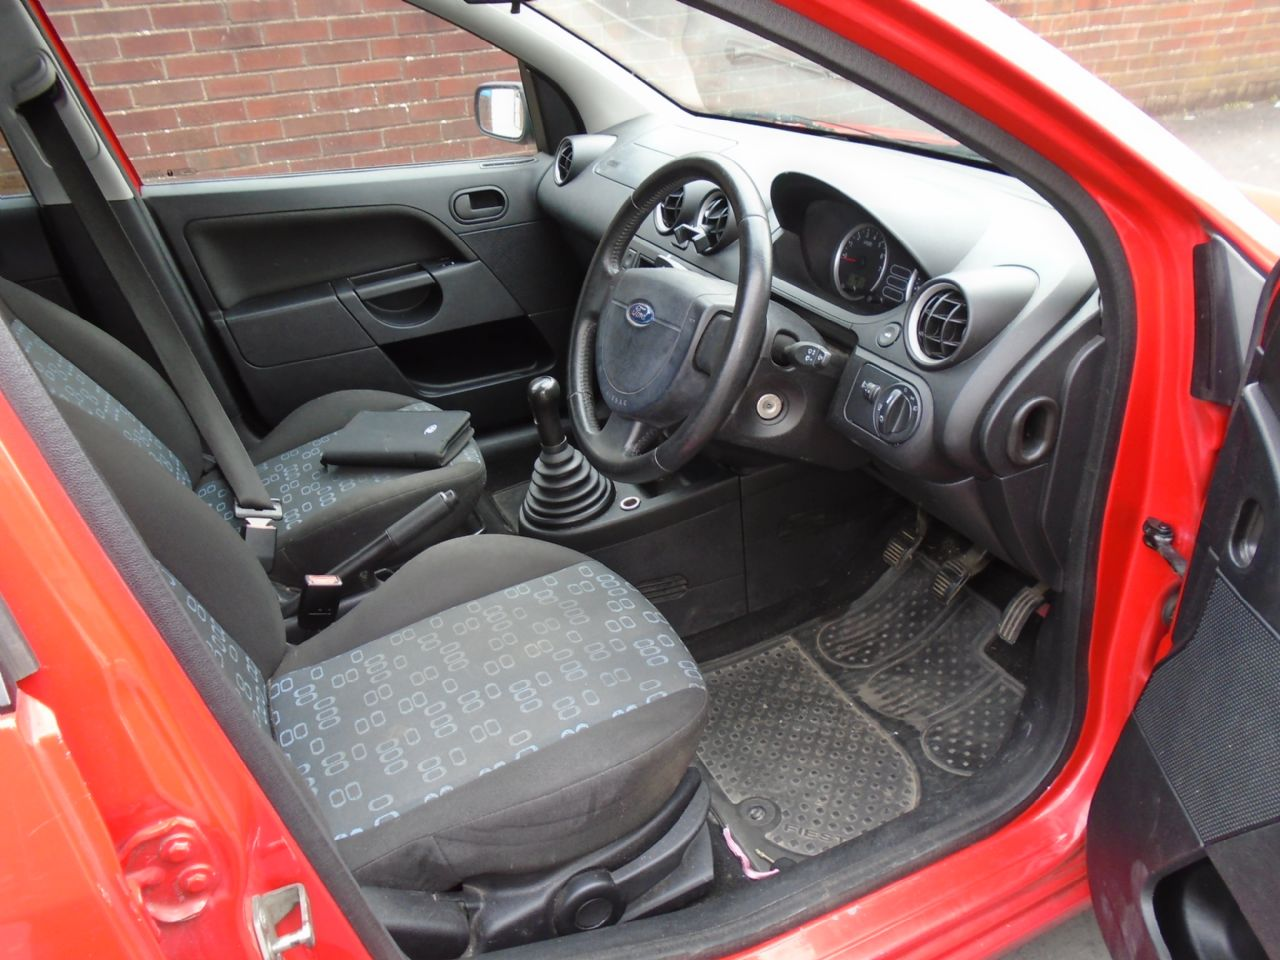 FORD FIESTA 1.4i 16v LX A/C - Picture 5